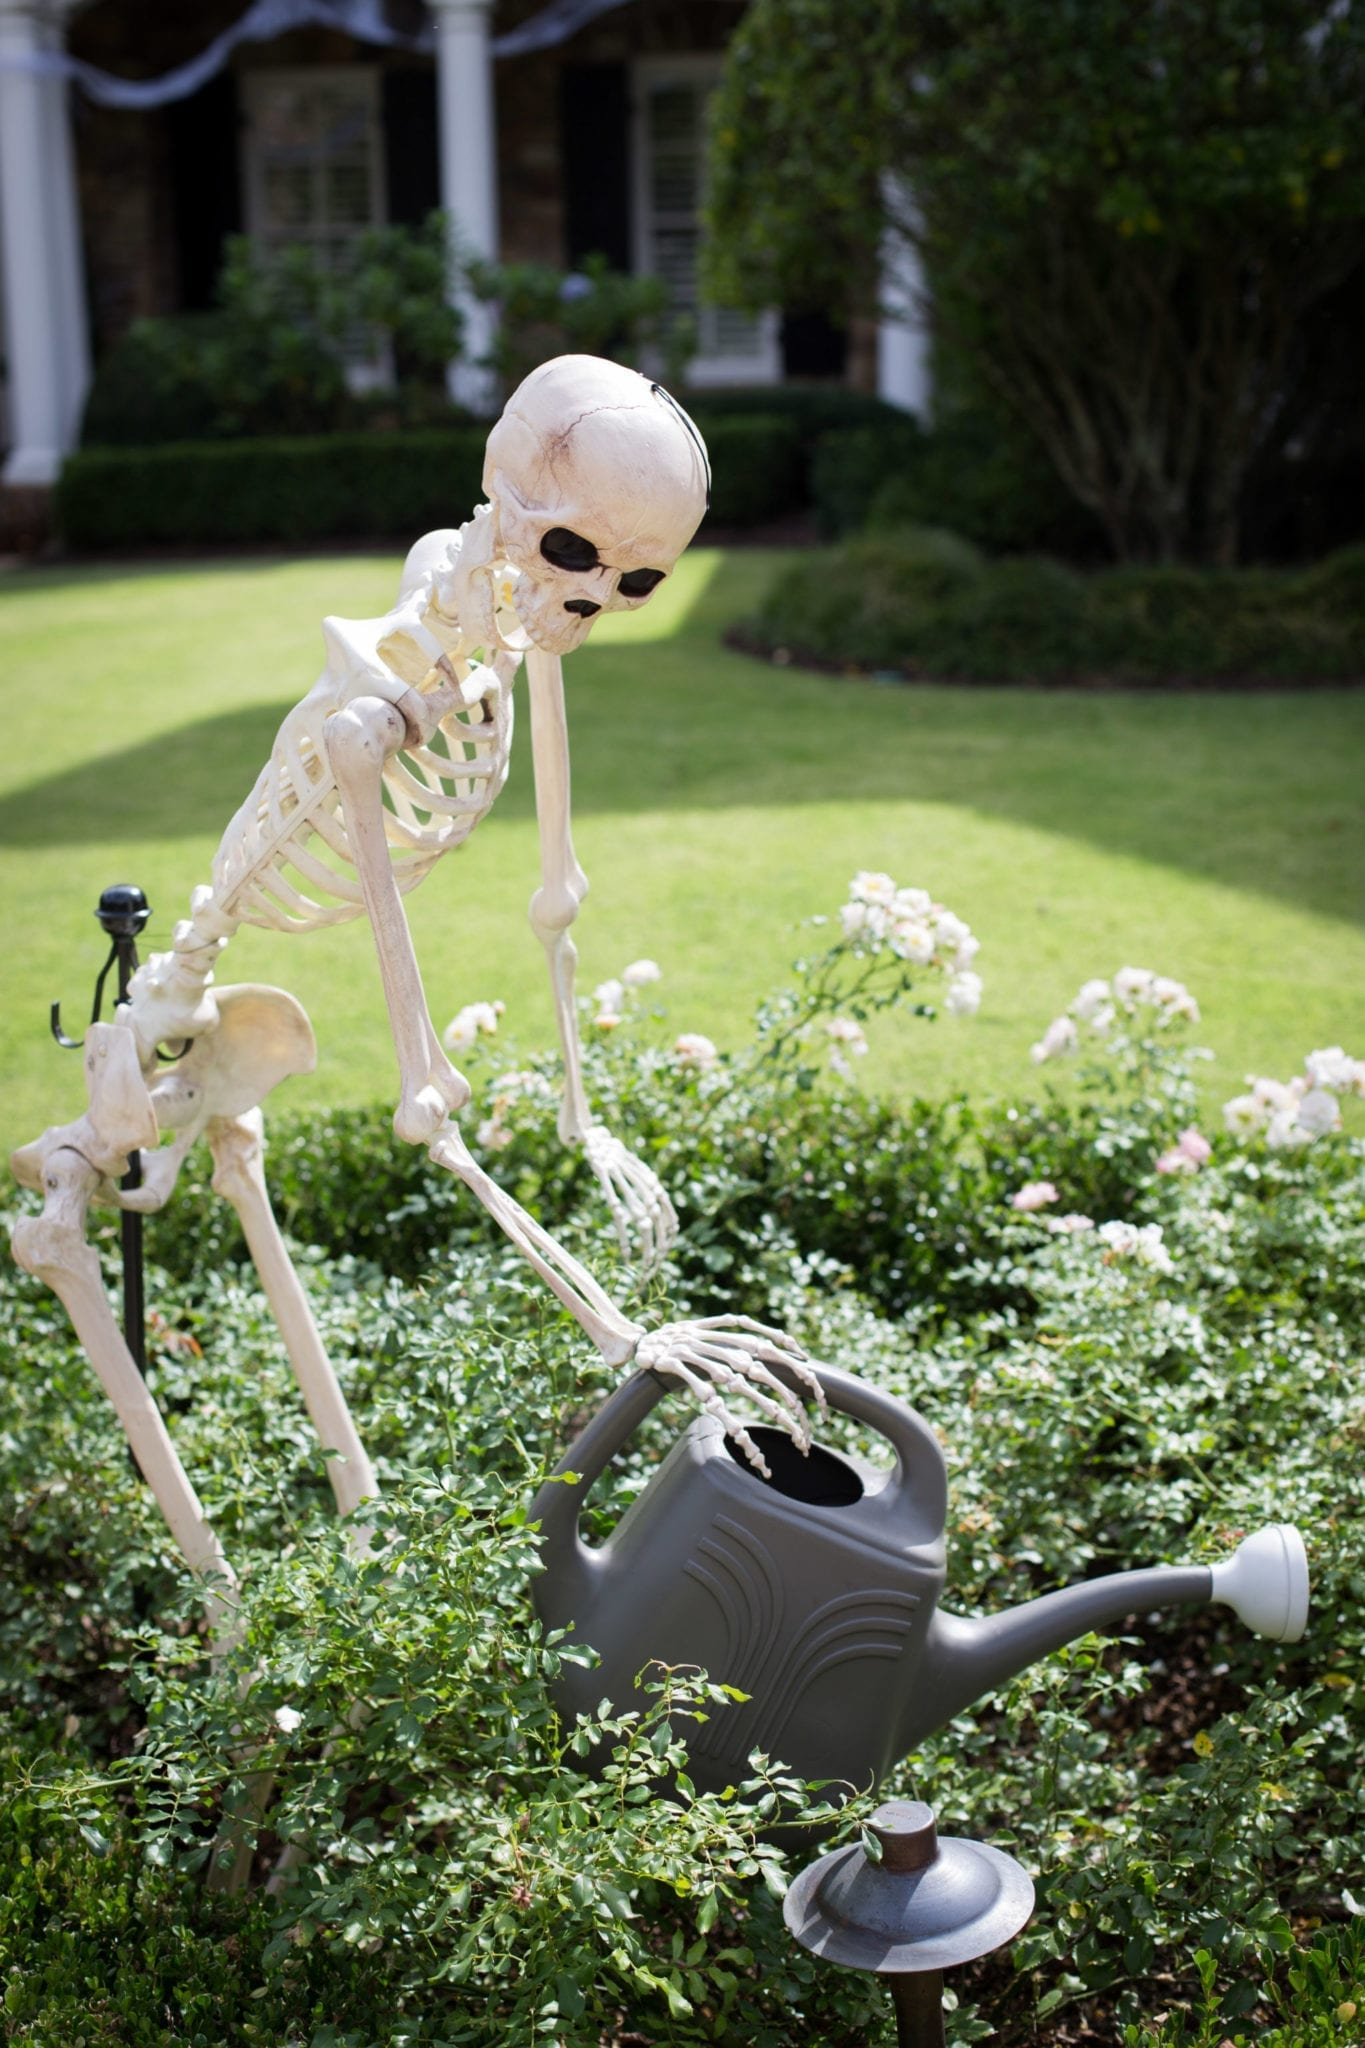 Funny ways to set up skeletons for Halloween